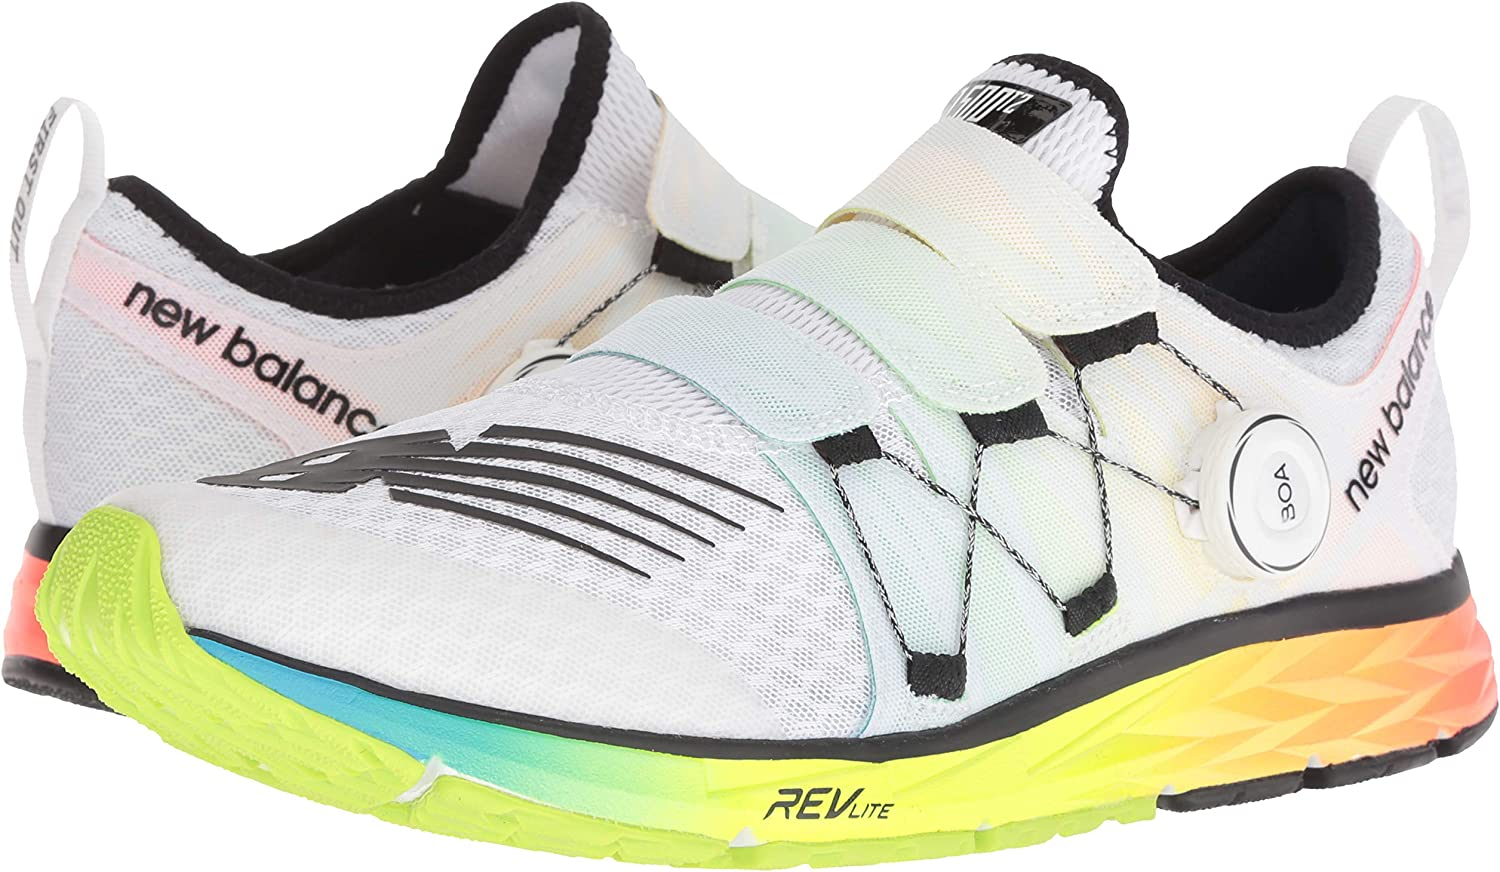 New Balance 1500v4 Boa, Zapatillas de Running Hombre, Blanco (White/Multicolor Wm4), 40 EU: Amazon.es: Zapatos y complementos